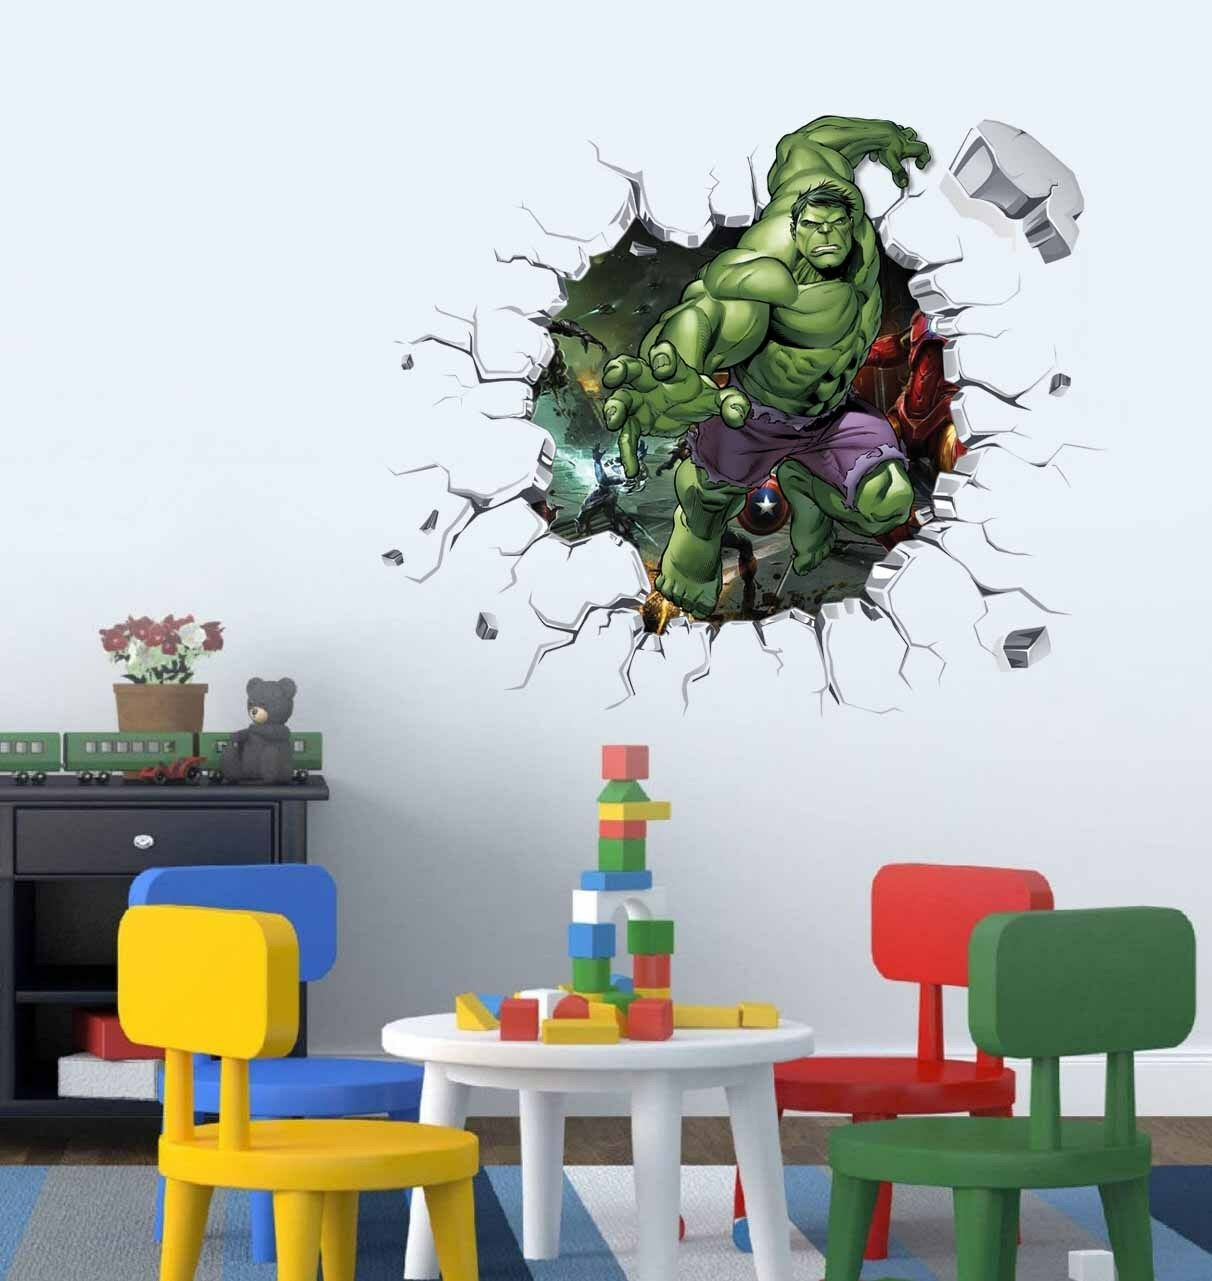 Etonnant The Hulk Smash Wall Art Decal Avengers Wallpaper For Kids Bedroom Decor  Sticker 1 Of 4FREE Shipping The Hulk ...